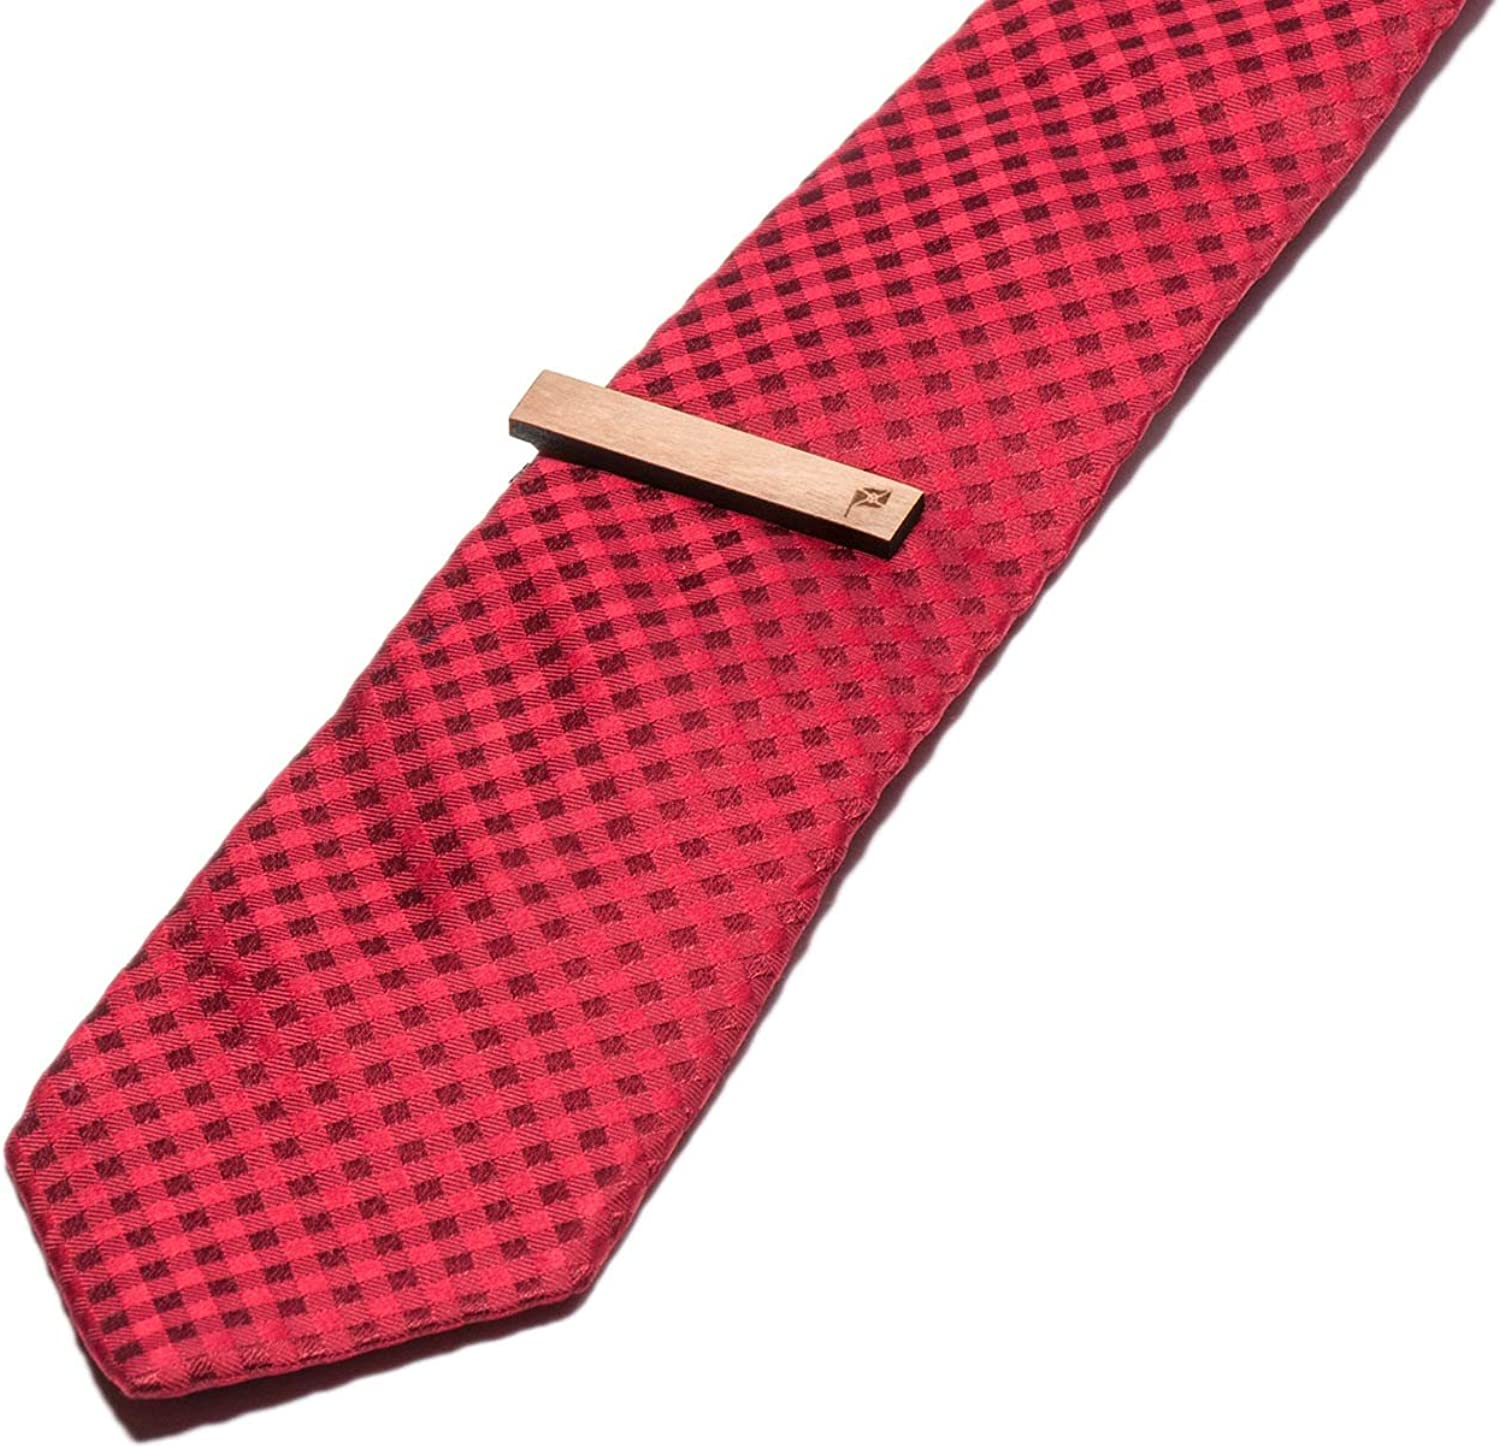 Wooden Accessories Company Wooden Tie Clips with Laser Engraved Flag of Burundi Design Cherry Wood Tie Bar Engraved in The USA